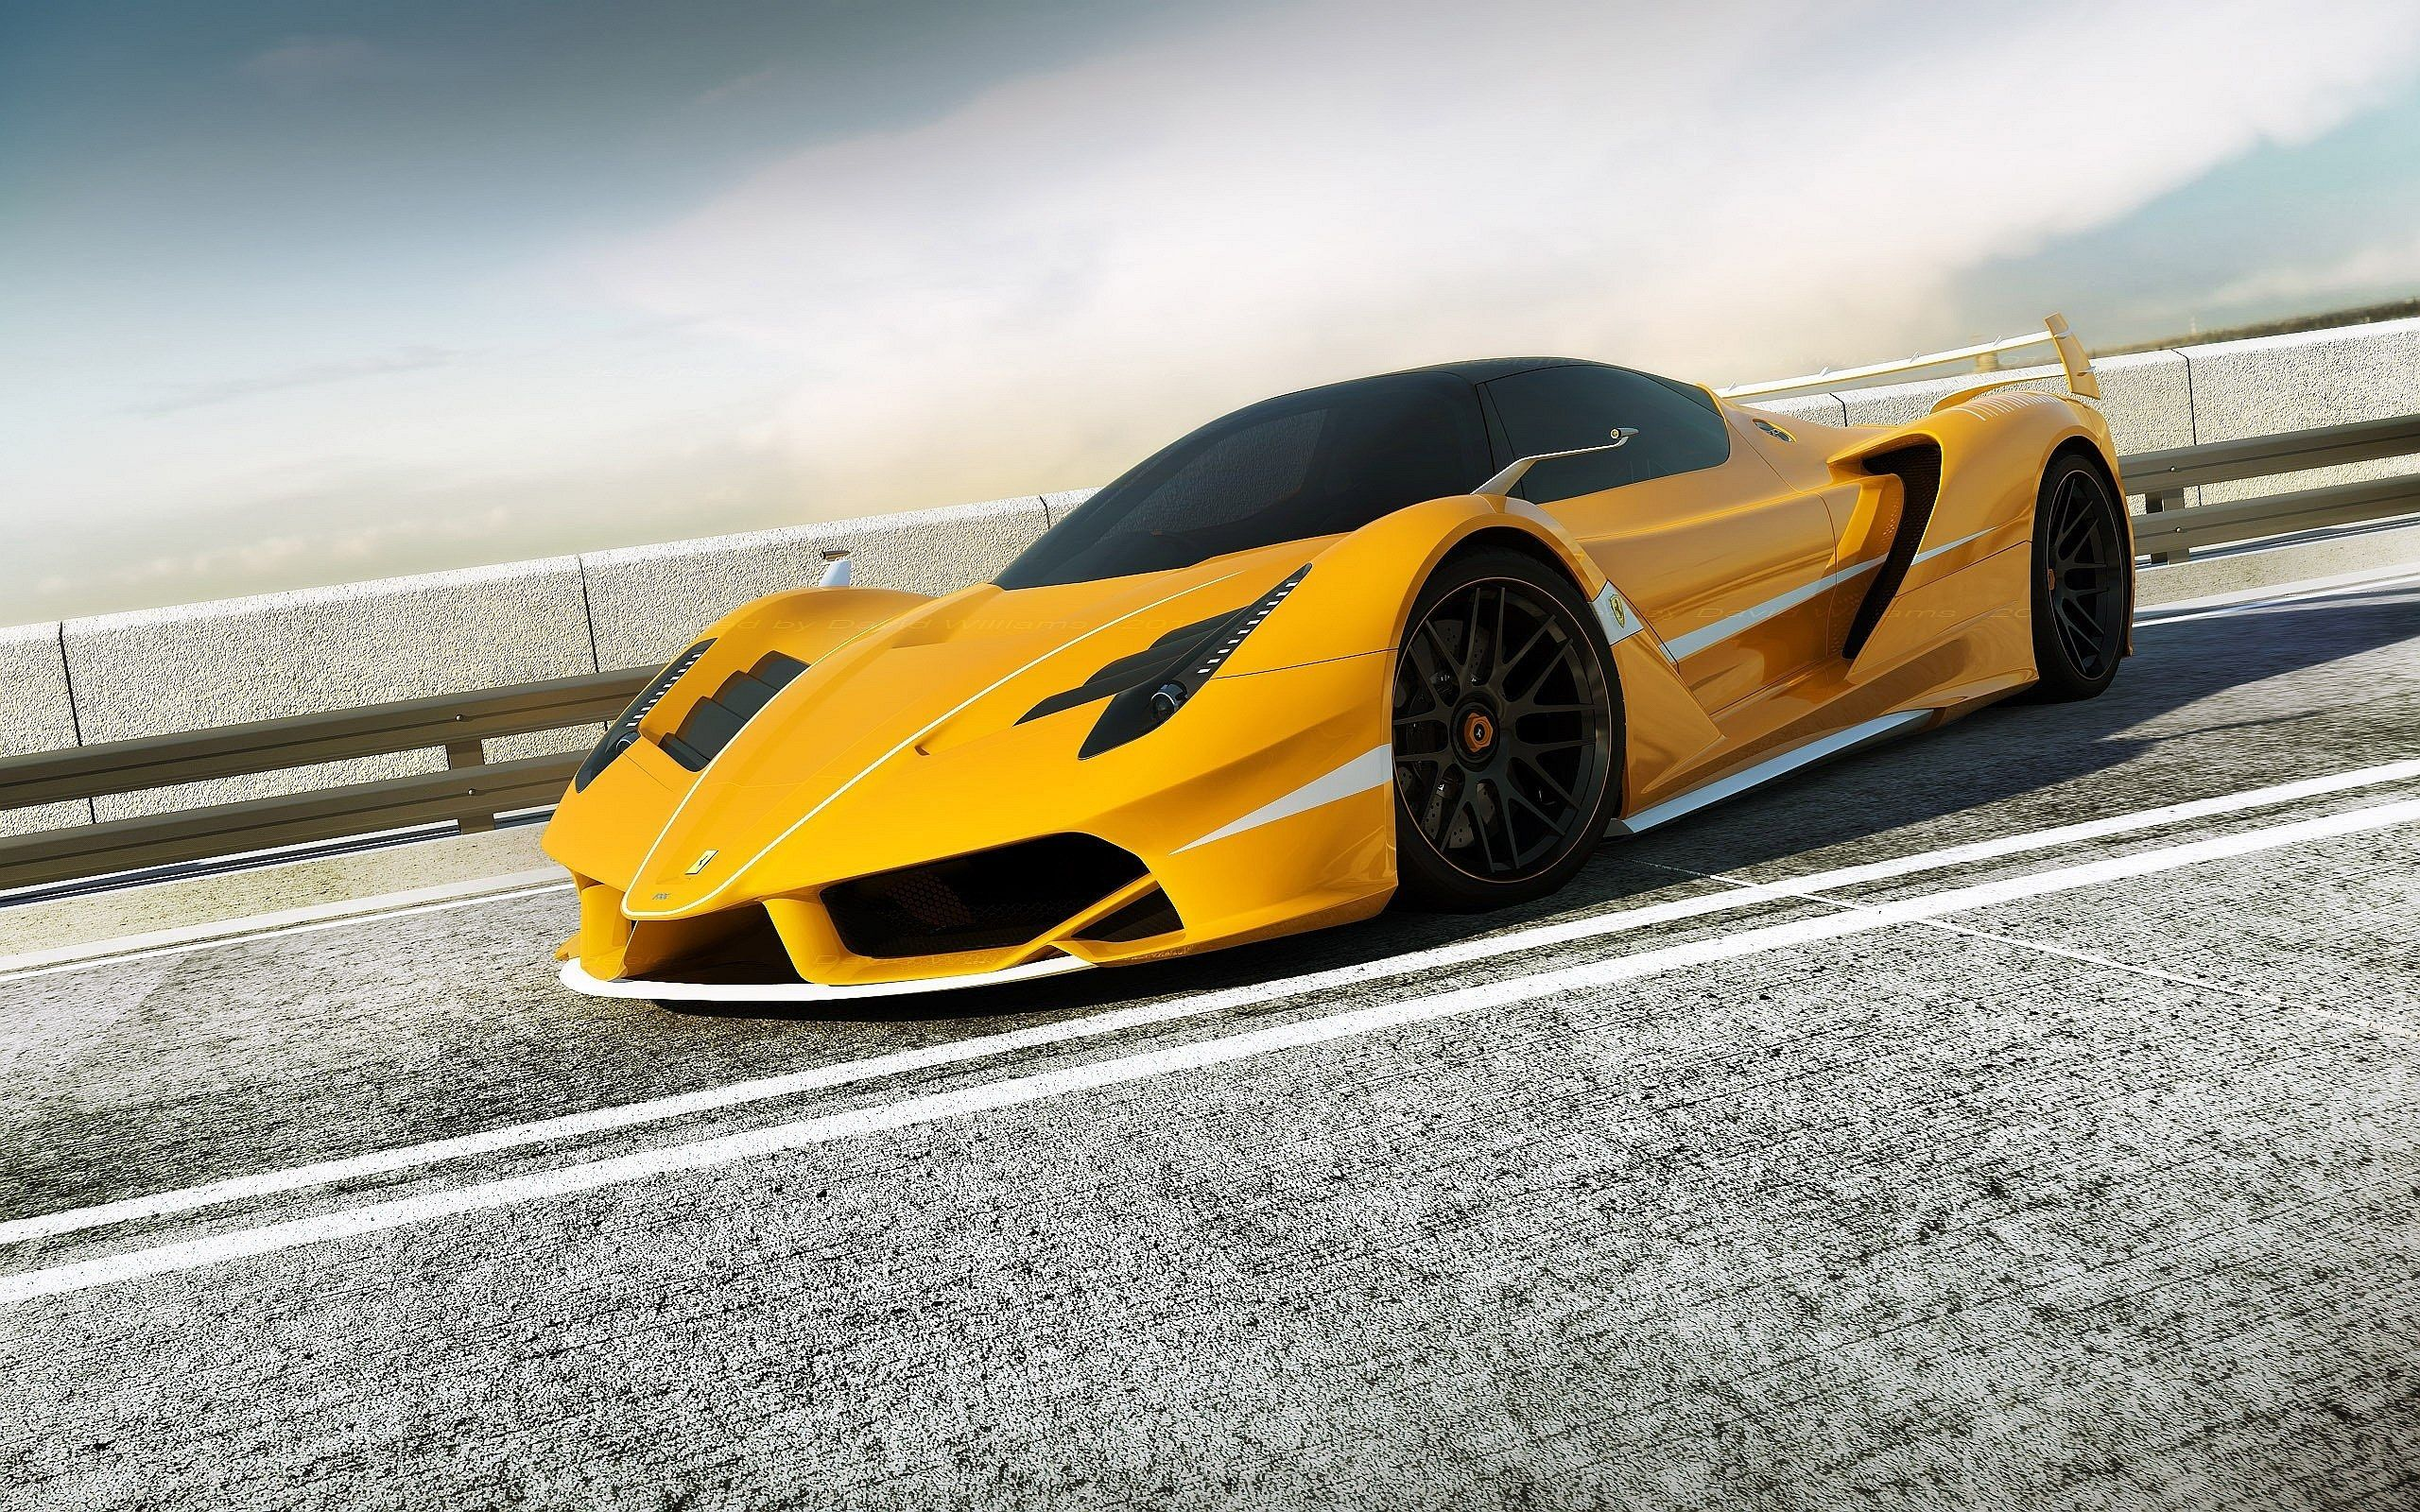 Yellow Ferrari F70 Wallpapers Pictures Photos Images Wallpaper Hd Wallpaper 3d Wallpaper Tumblr